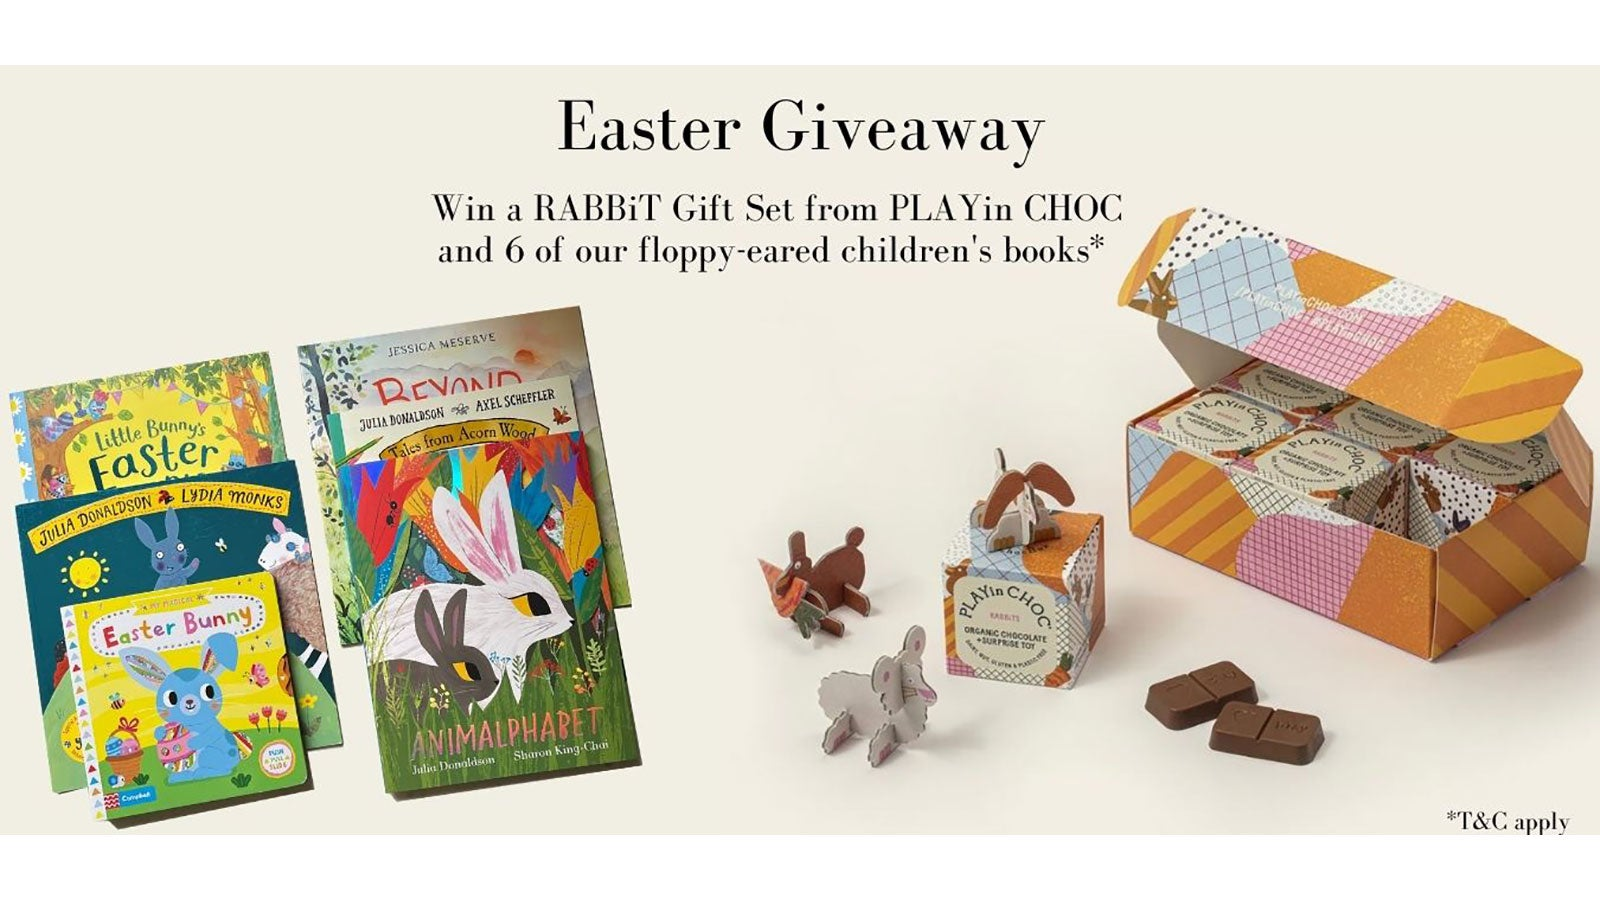 A range of Pan Macmillan children's books and a Rabbit Gift Set from PLAYin CHOC.